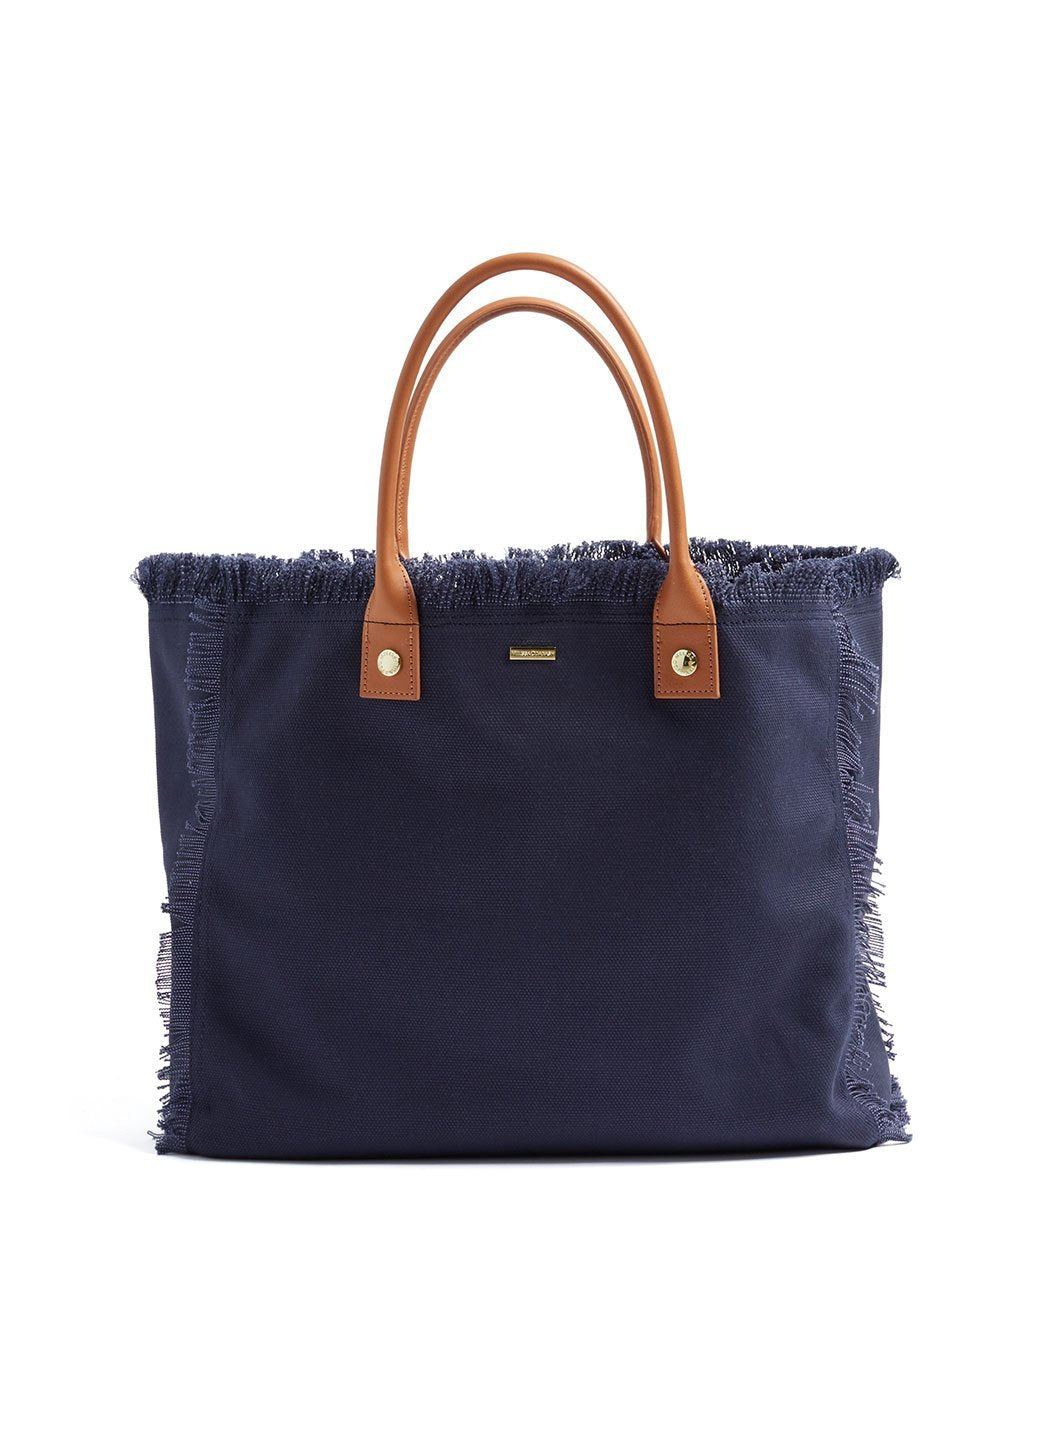 cap ferrat large beach tote navy 1 2019